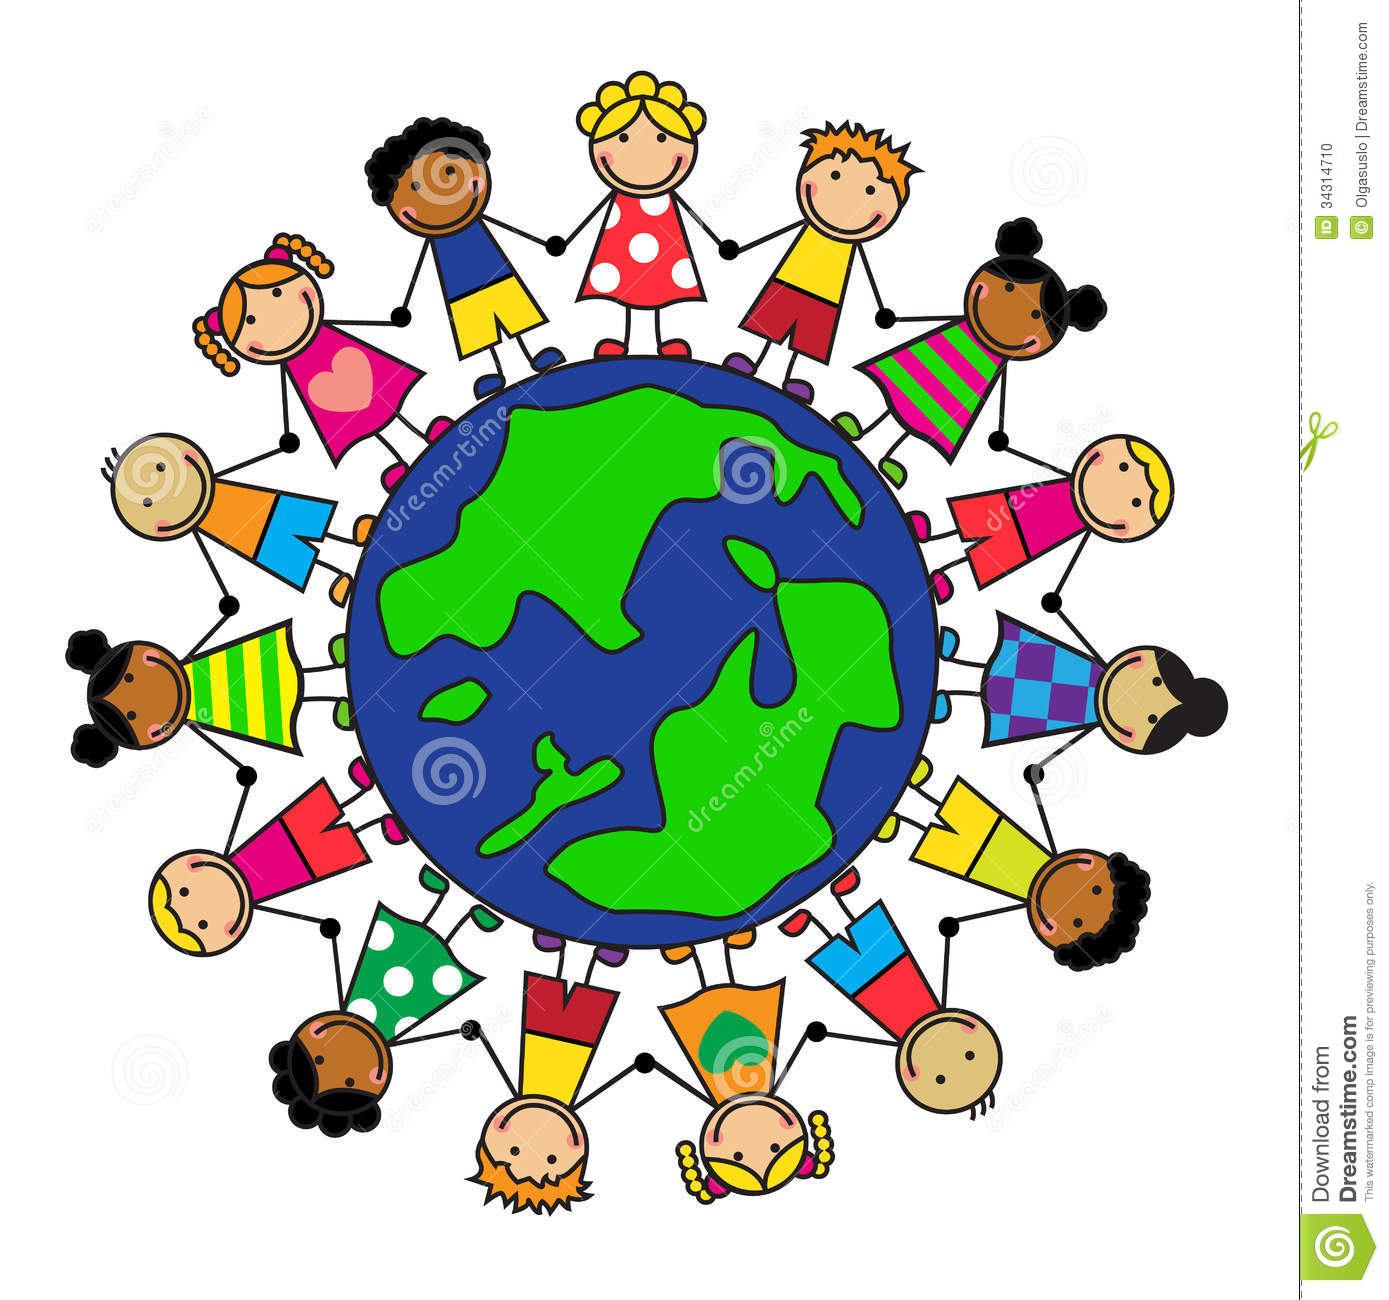 https://thumbs.dreamstime.com/z/friendship-peoples-cartoon-children-different-nationalities-planet-holding-hands-34314710.jpg